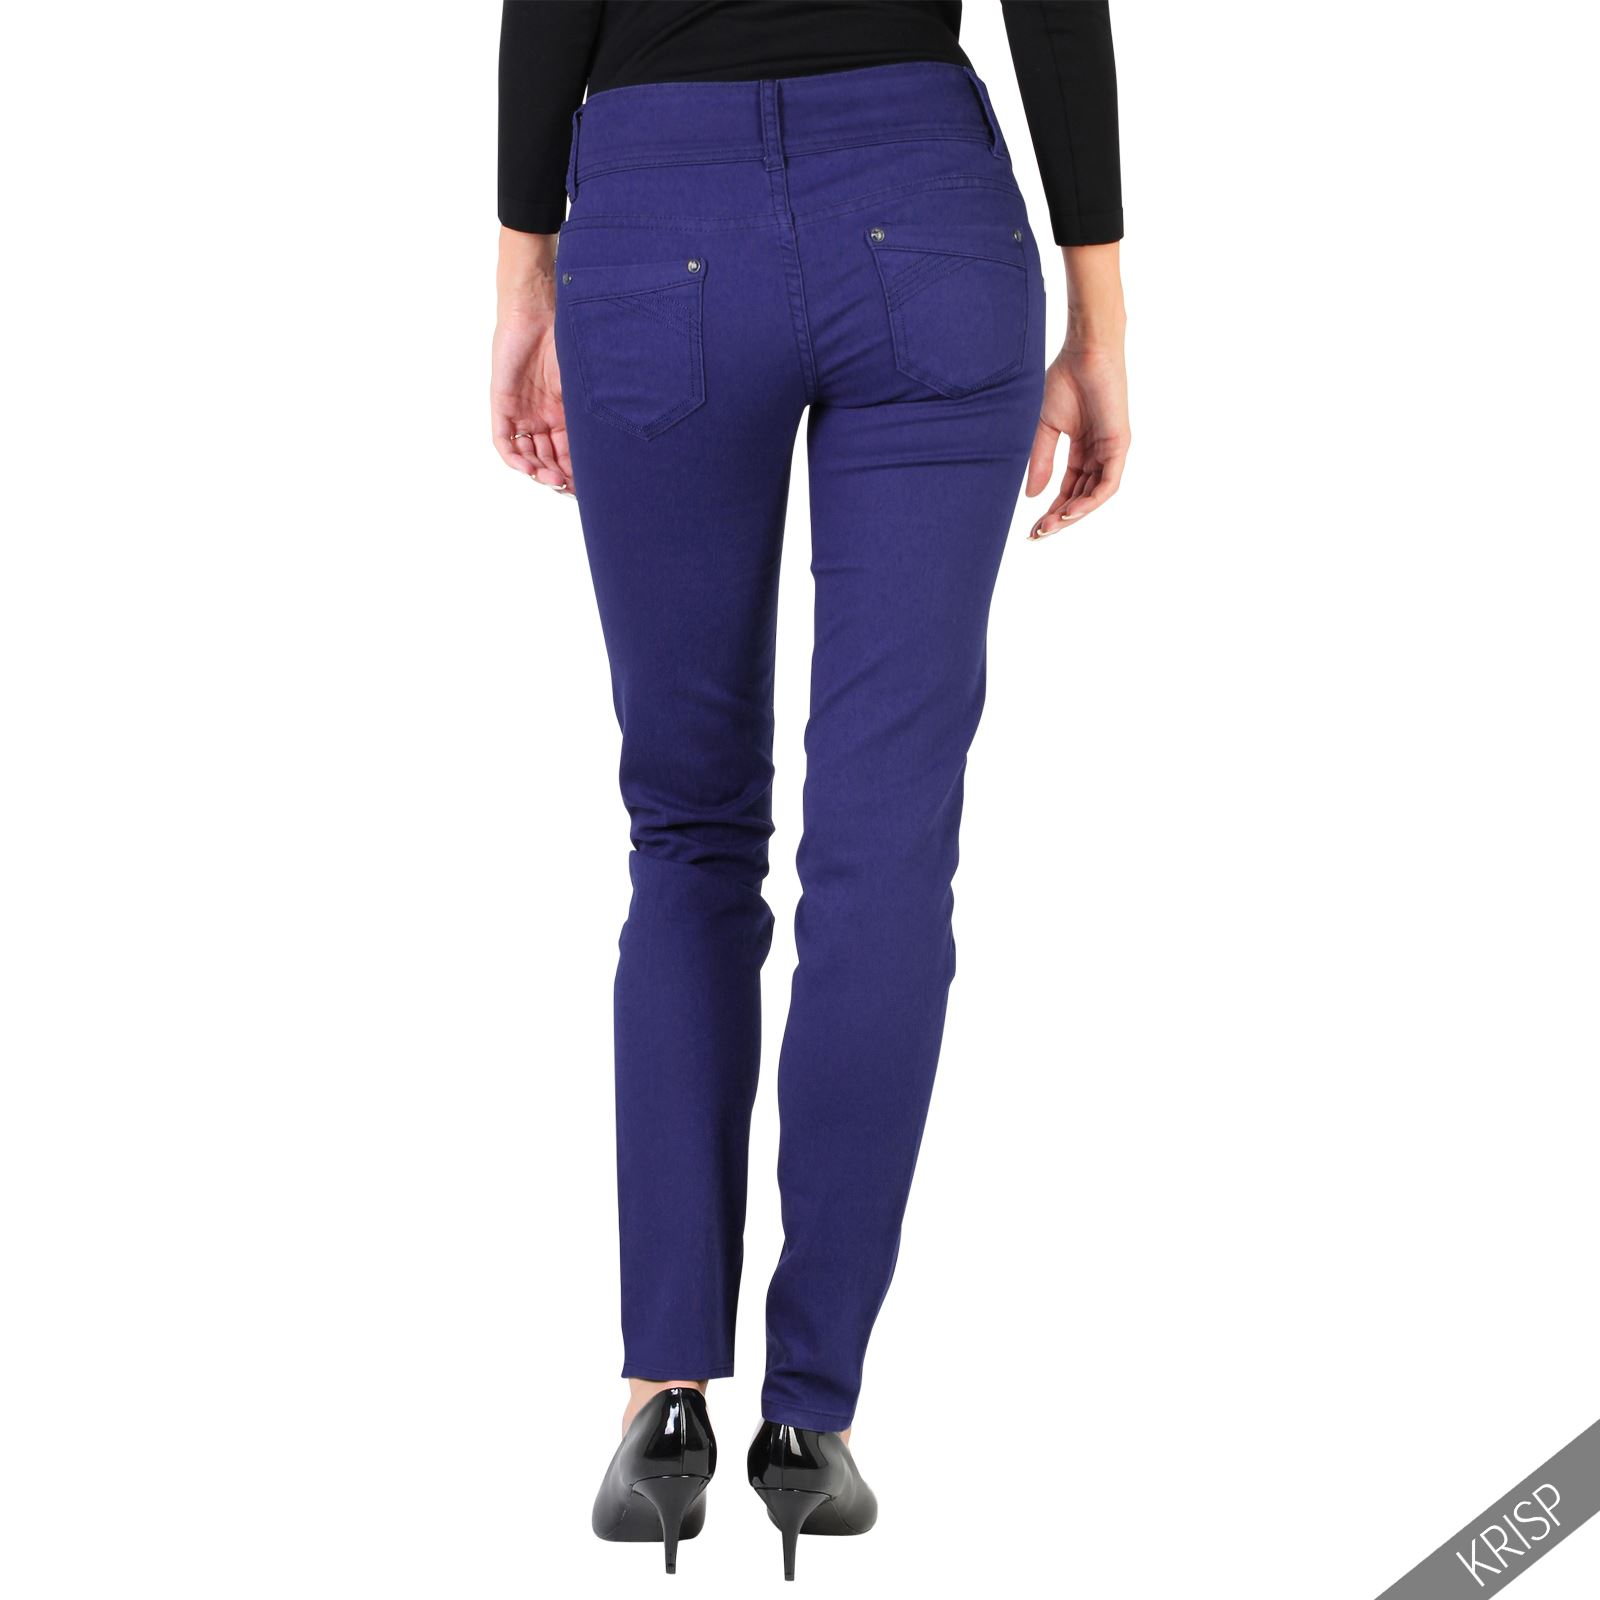 Best prices on Black skinny leg pants in Women's Pants online. Visit Bizrate to find the best deals on top brands. Read reviews on Clothing & Accessories merchants and buy with confidence.